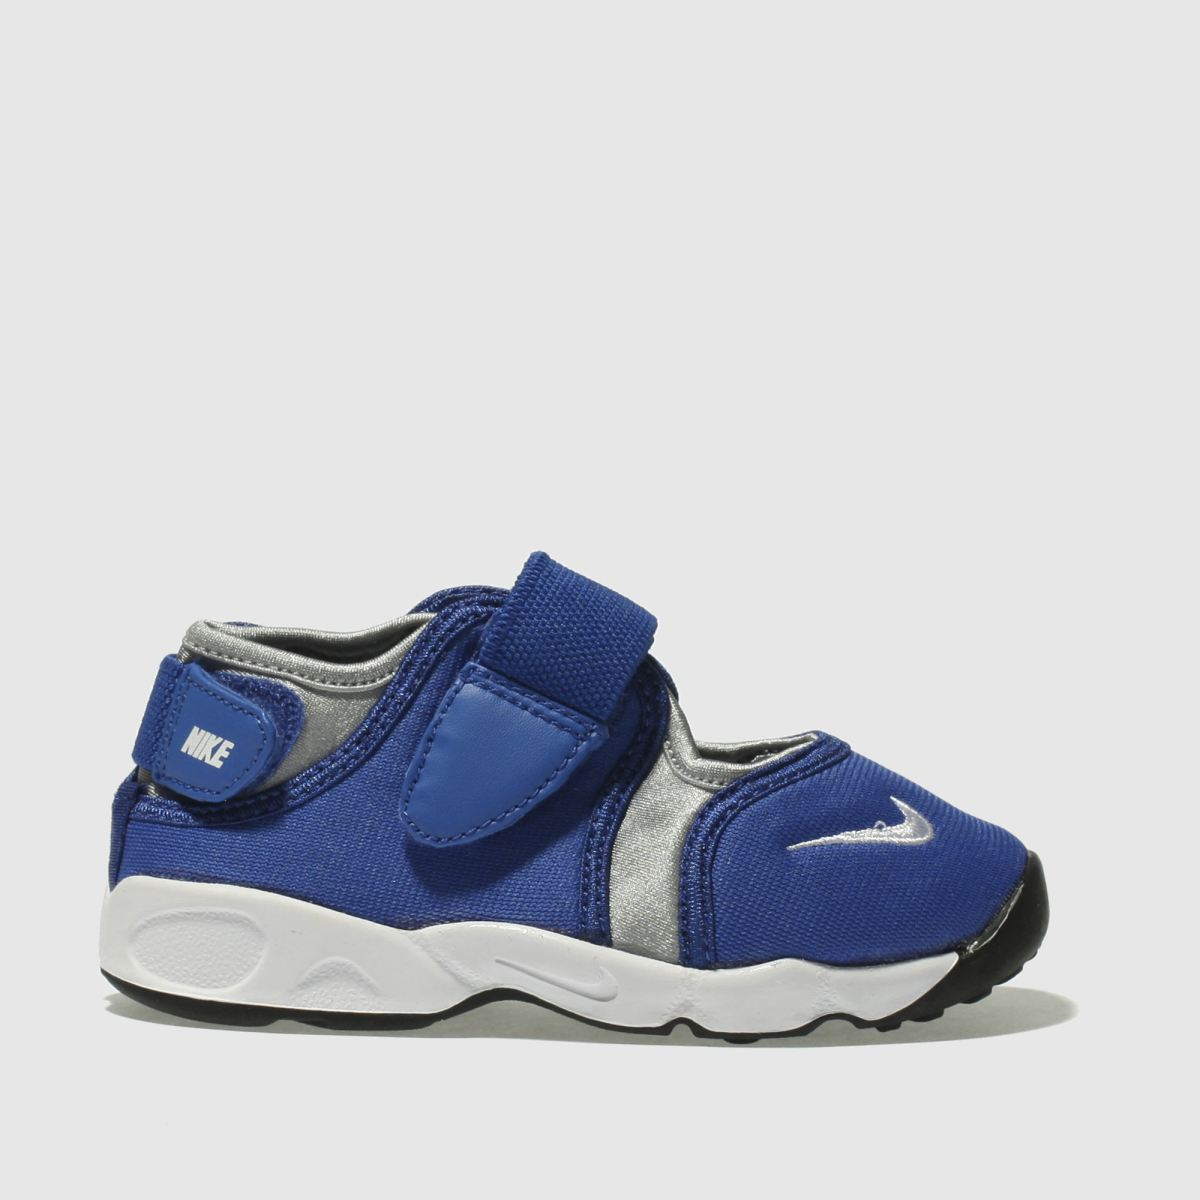 Nike Blue Rift Trainers Toddler